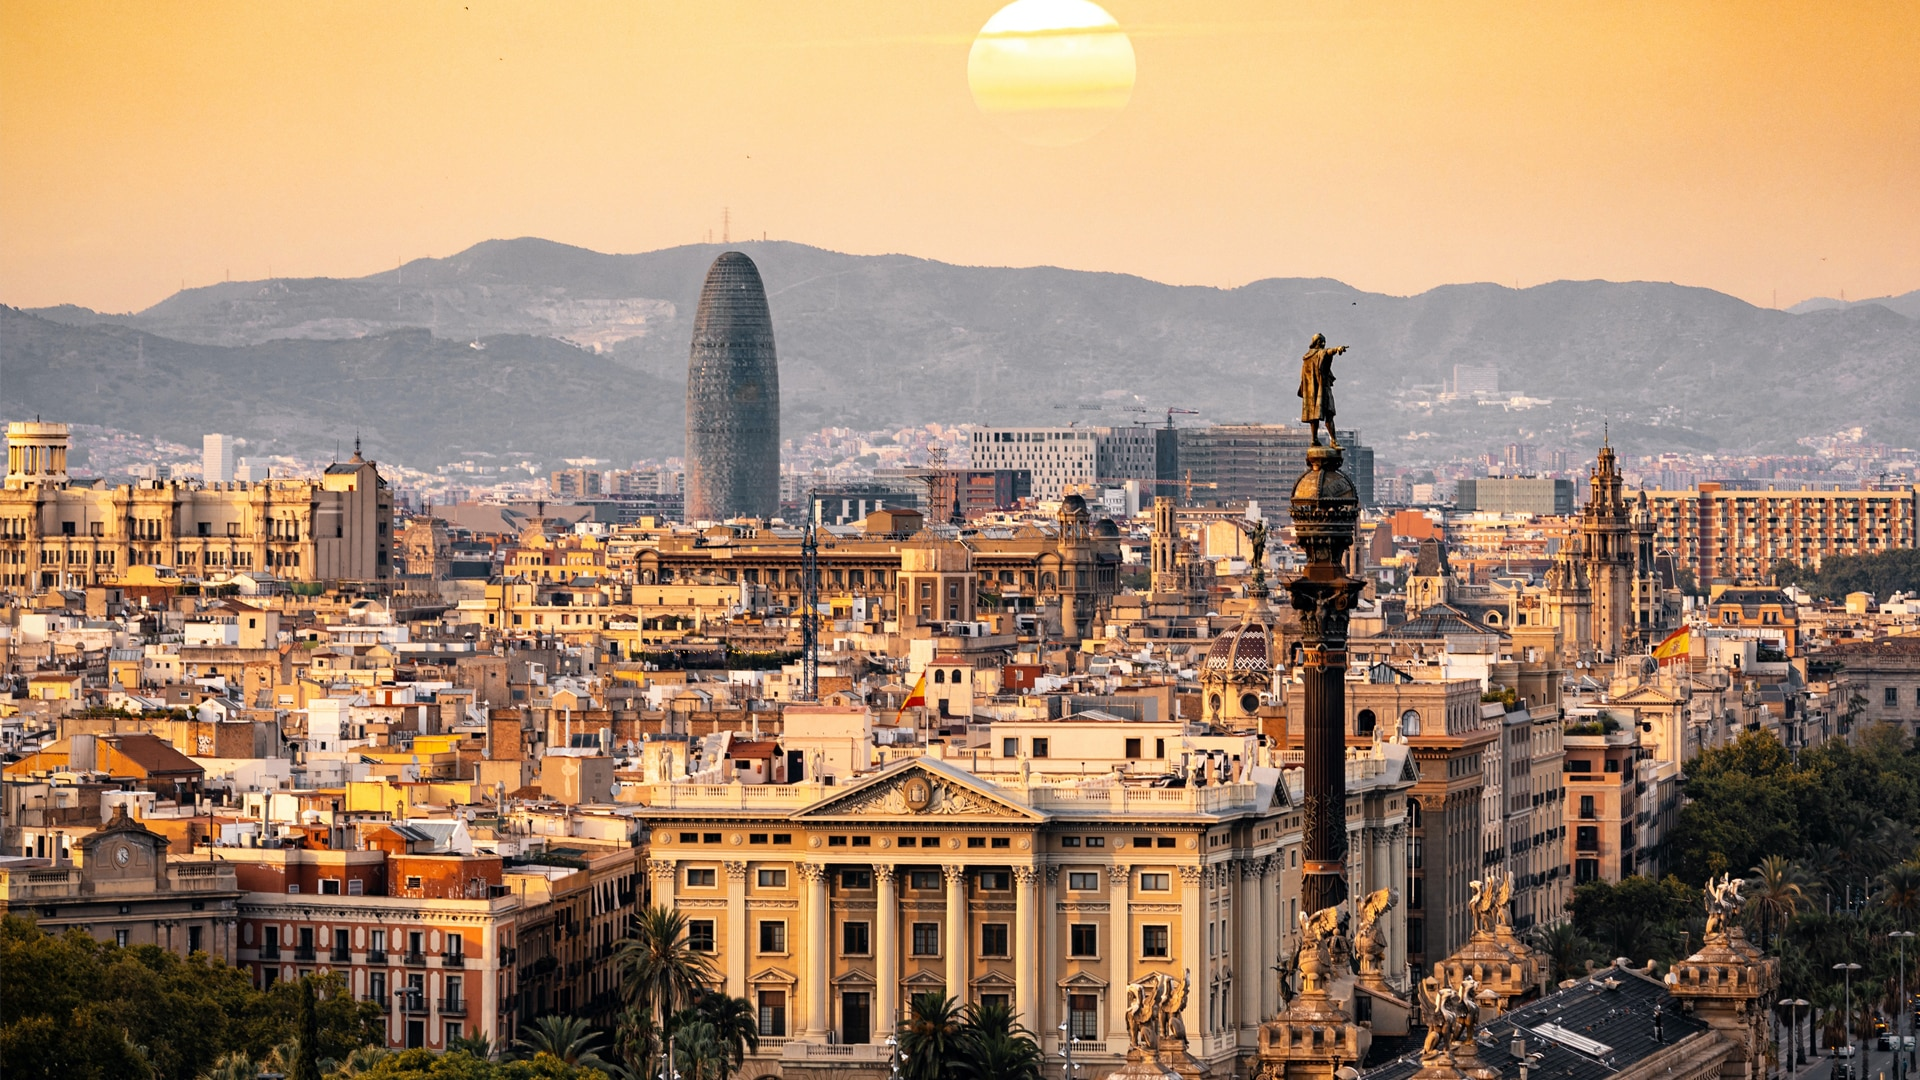 Spain Incentive Travel Guide: Three Can't-Miss Destinations